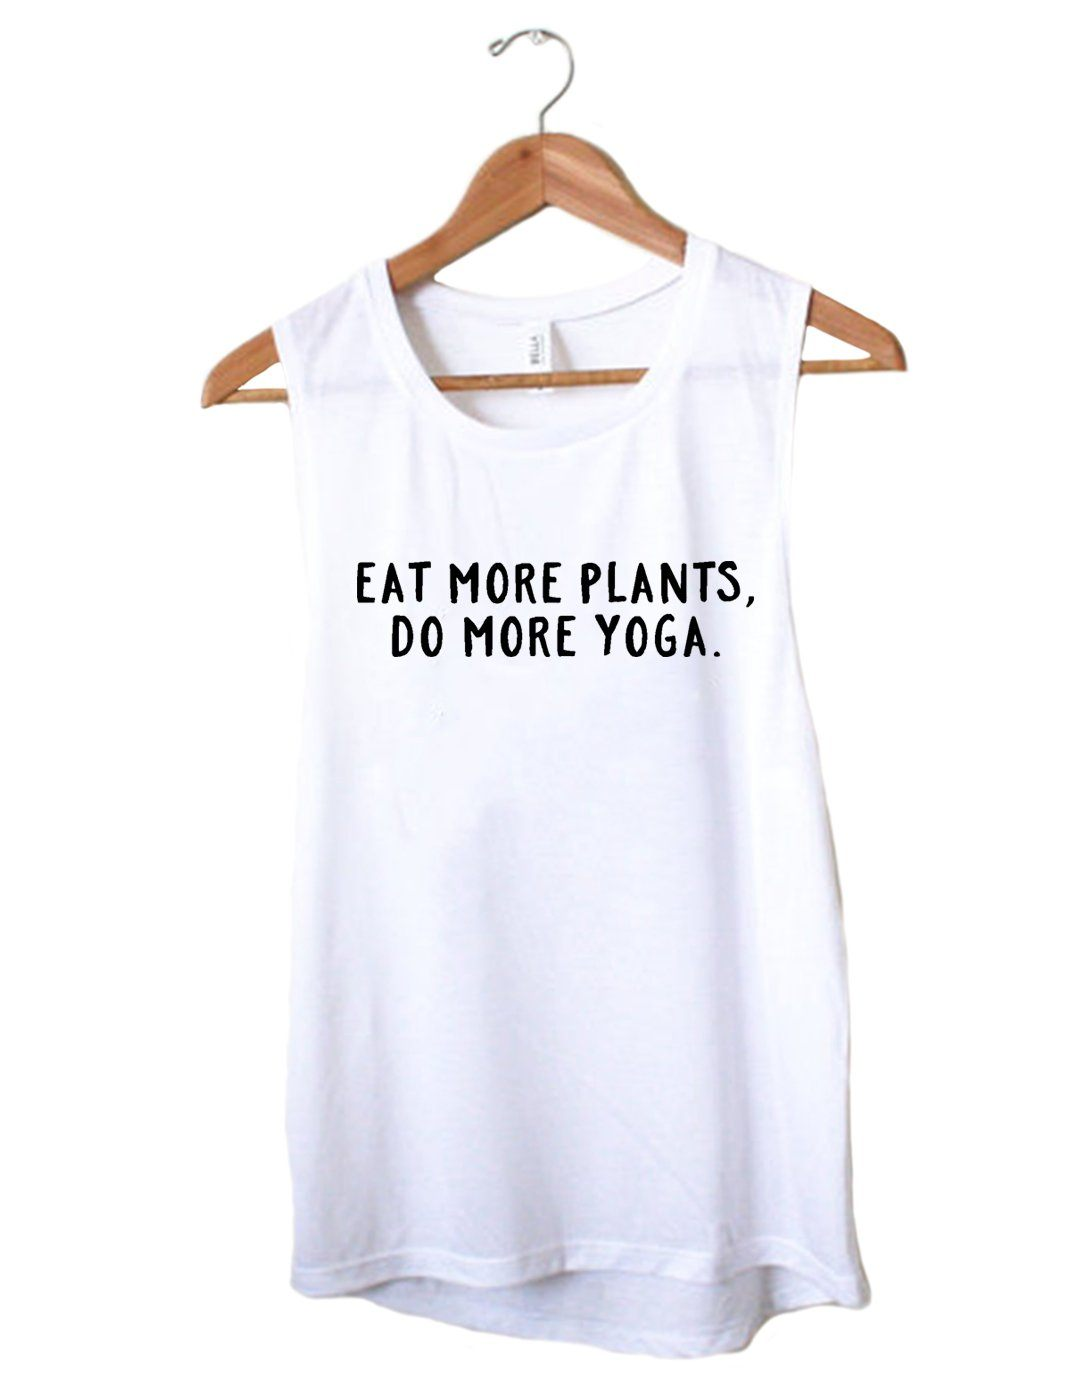 888d1b6fd51a4 Organic Muscle Tank - Eat More Plants - Do More Yoga - Eco Muscle Tank